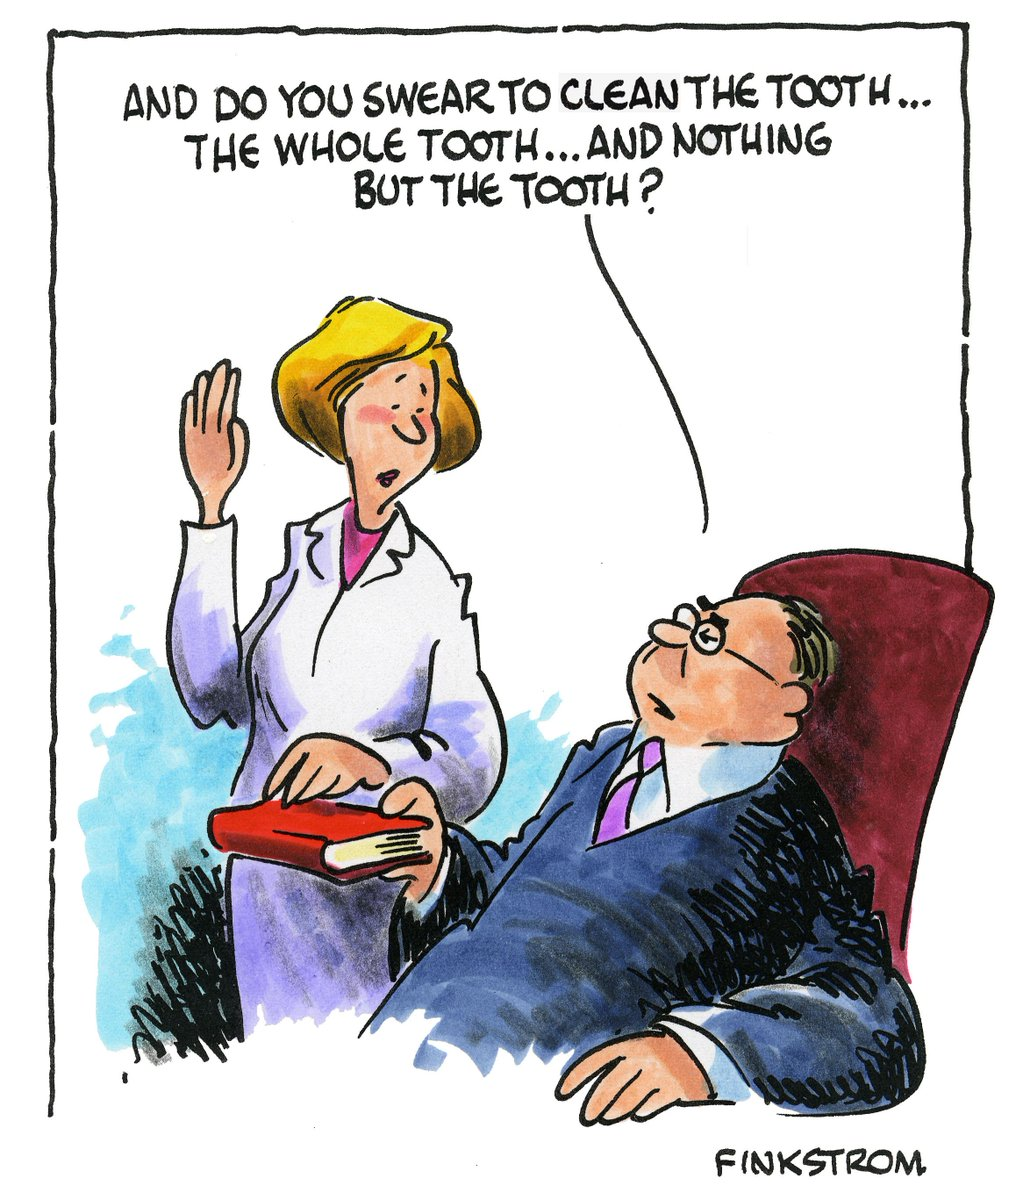 Henry schein dental on twitter fun friday enjoy some - Funny dental pictures cartoons ...